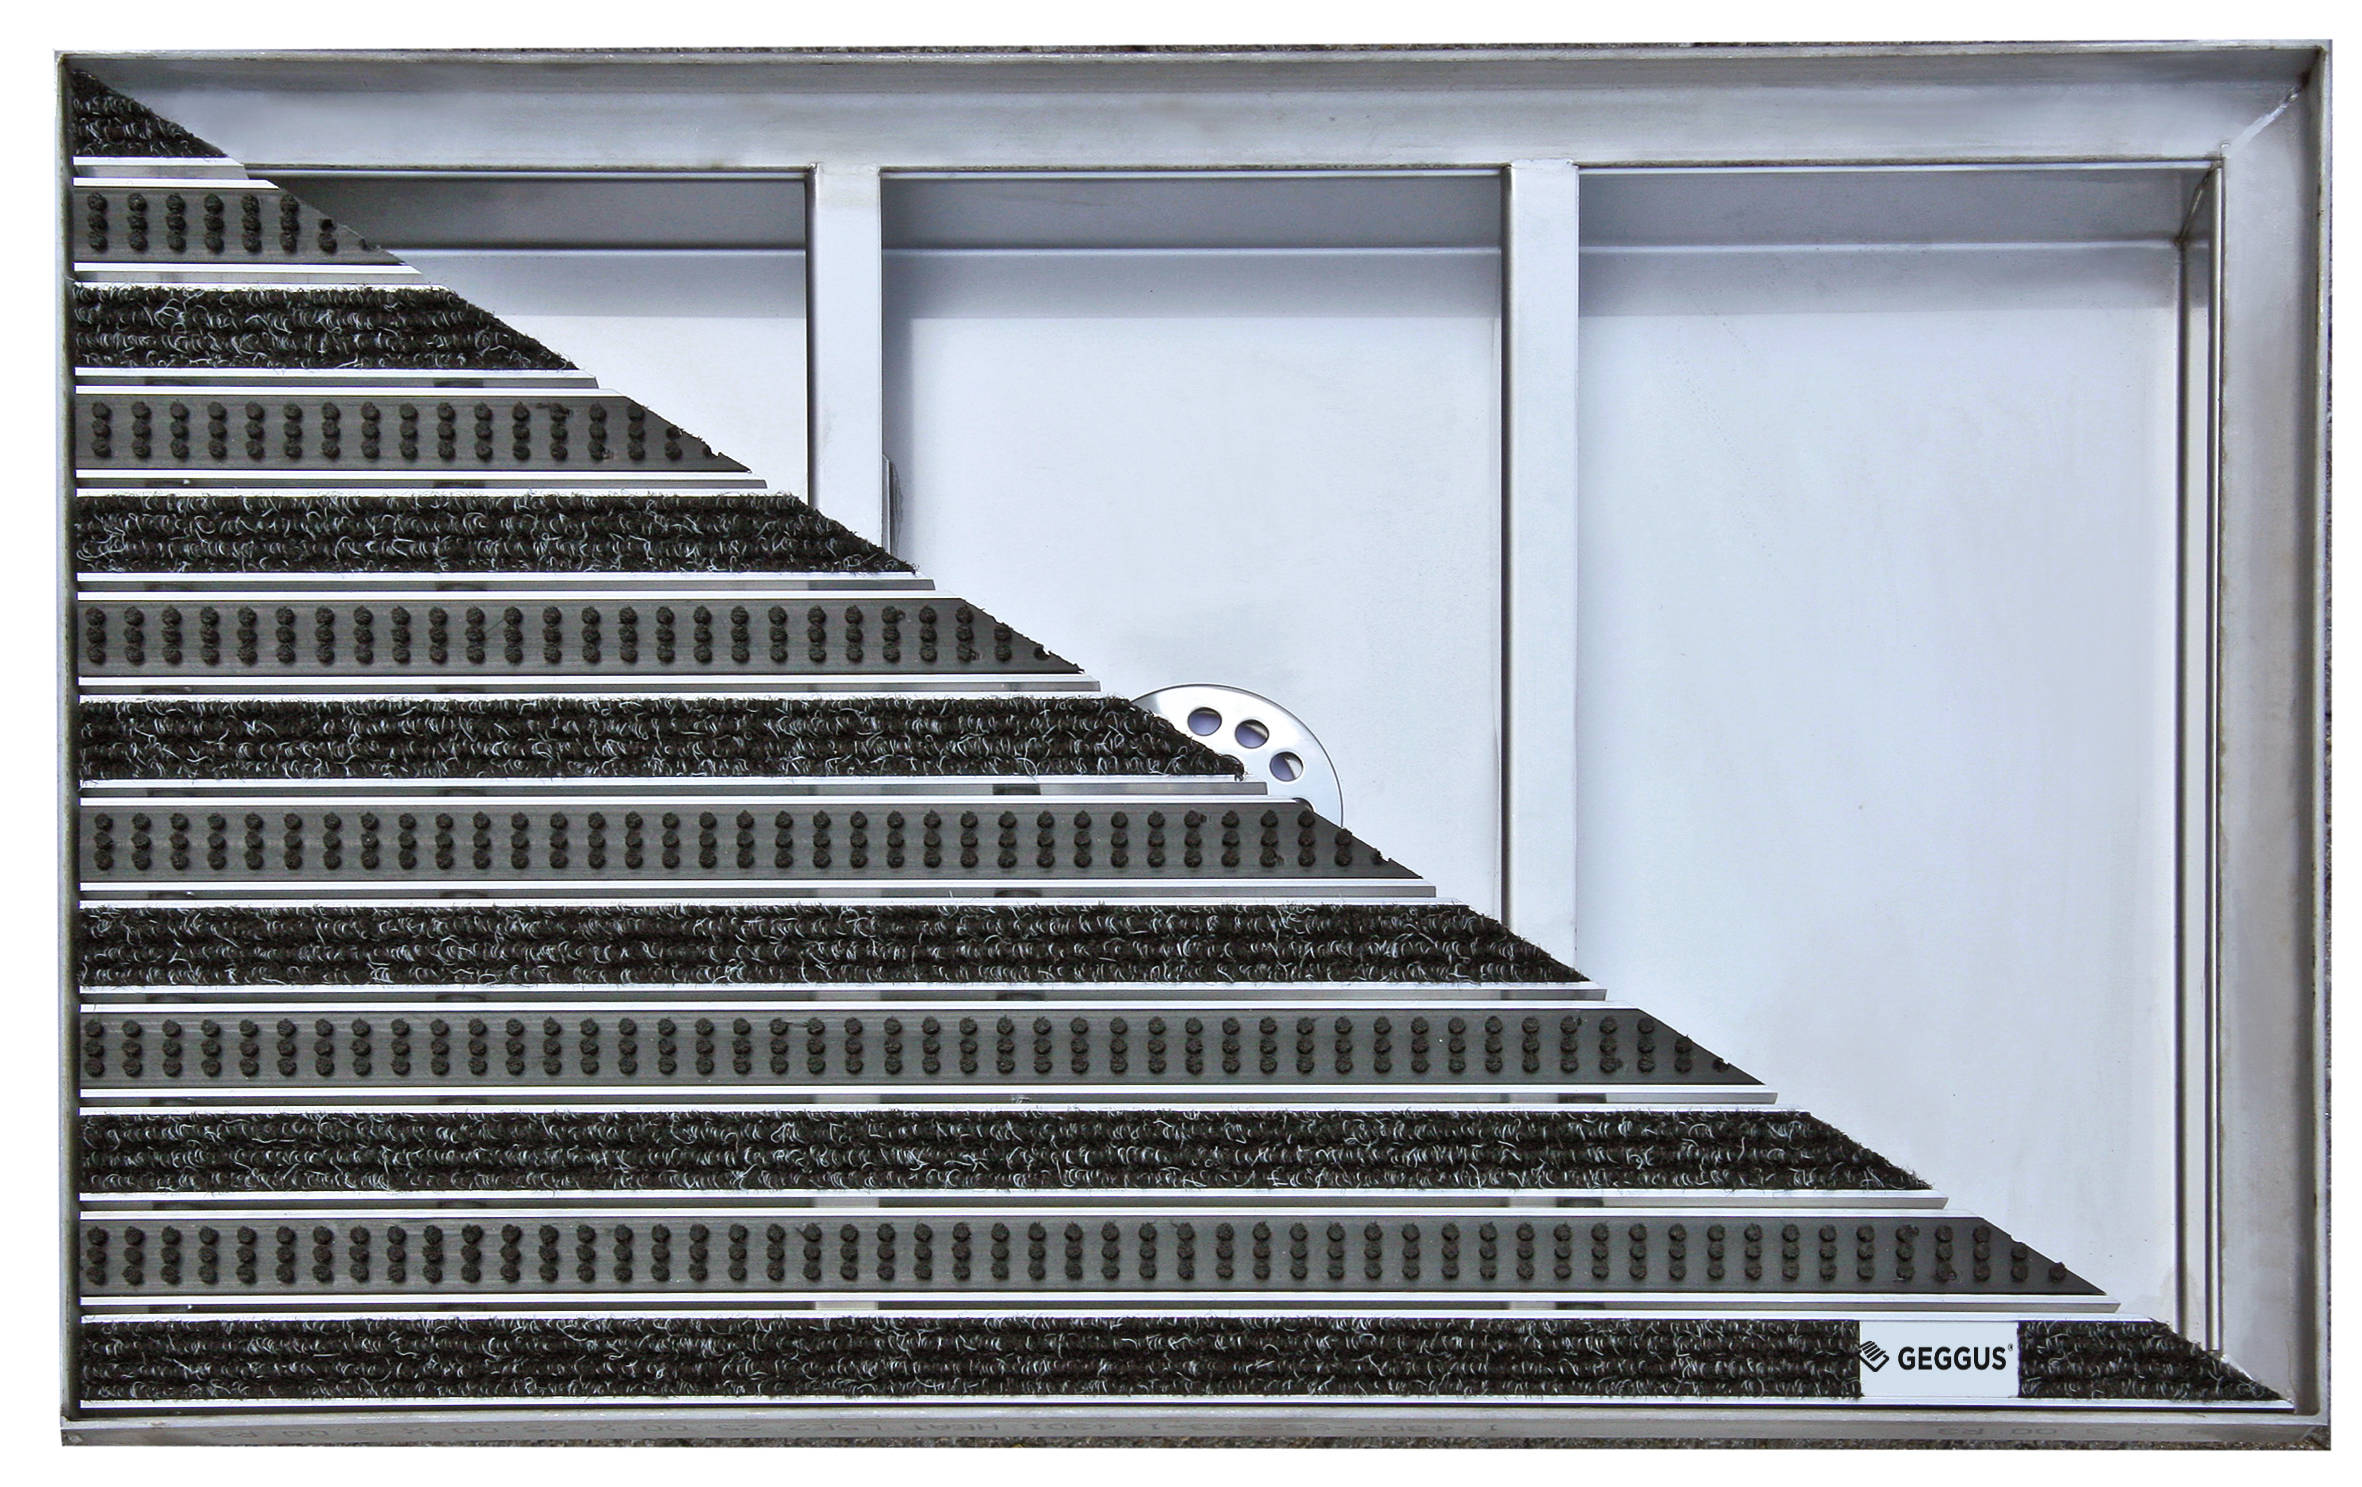 Geggus Entrance Matting Dirt collecting tray